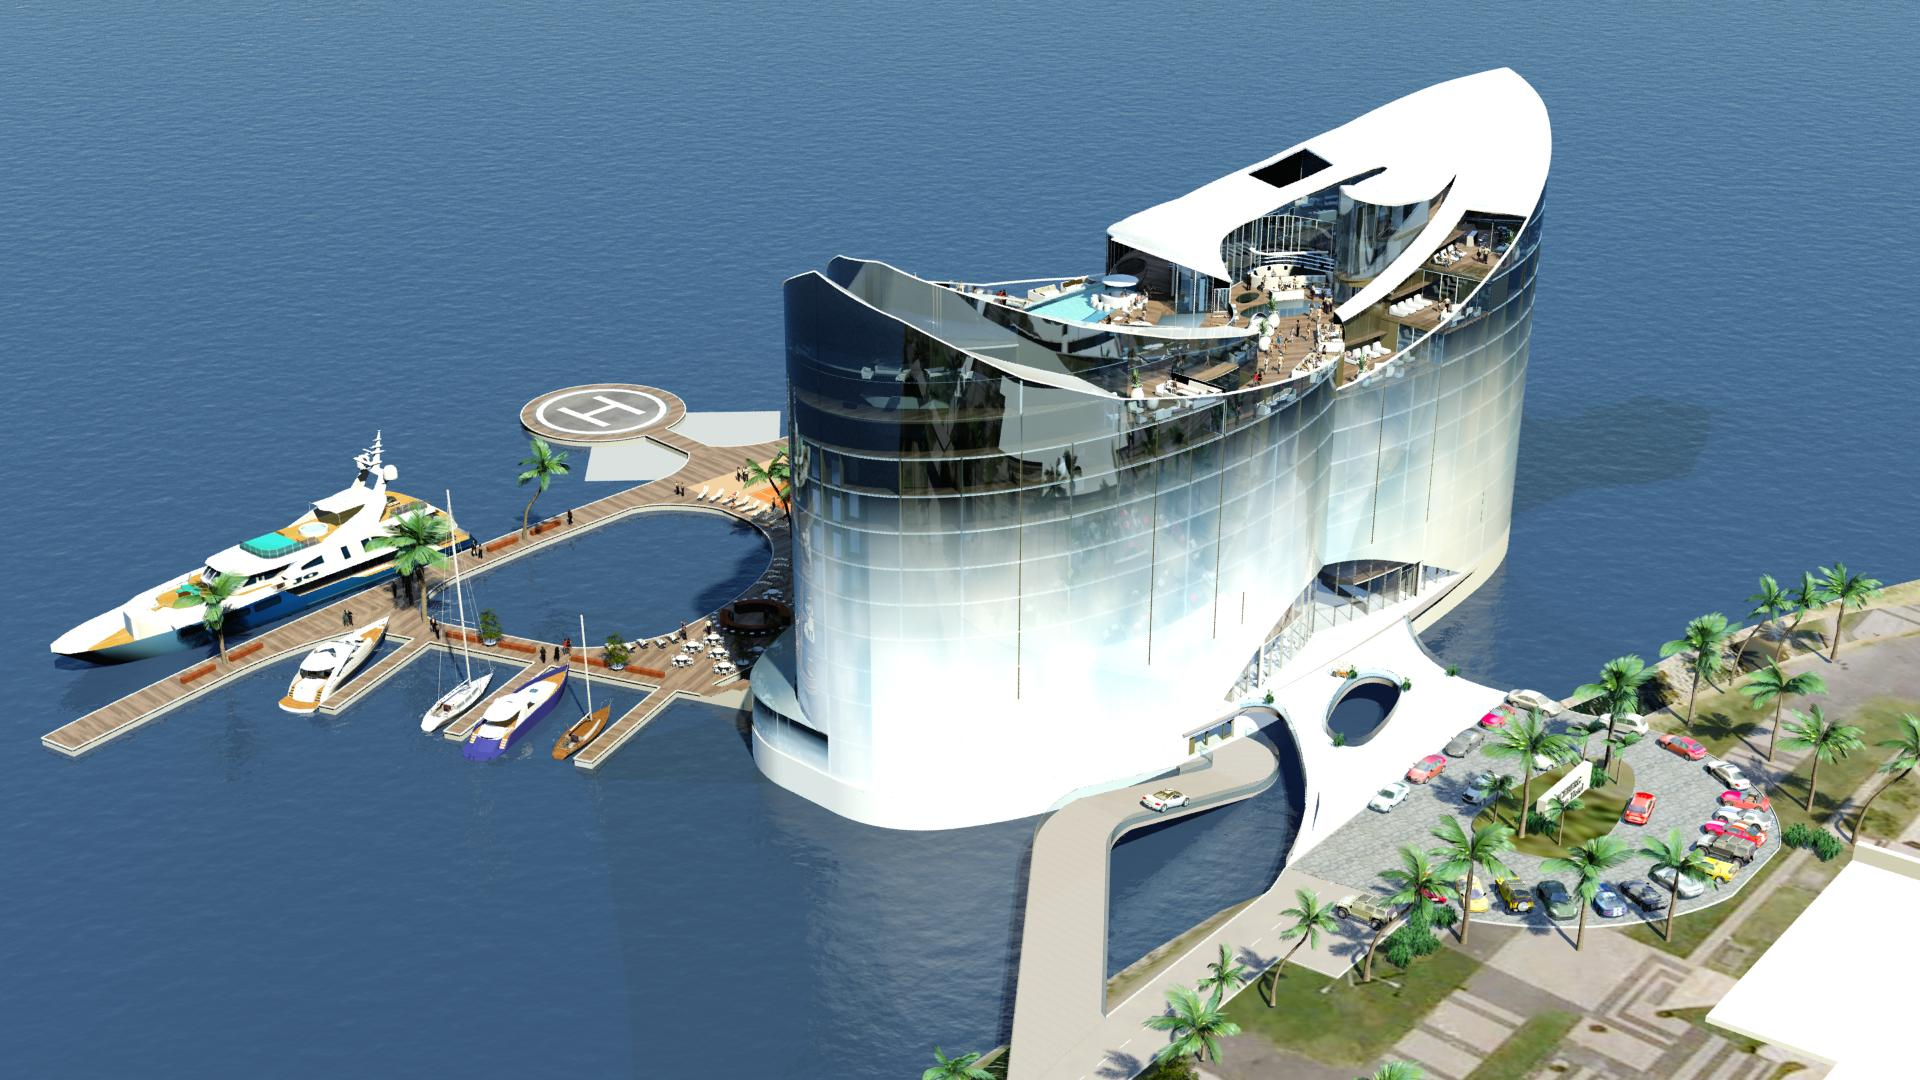 The floating hotel concept bluetech finland for Hotel concepts